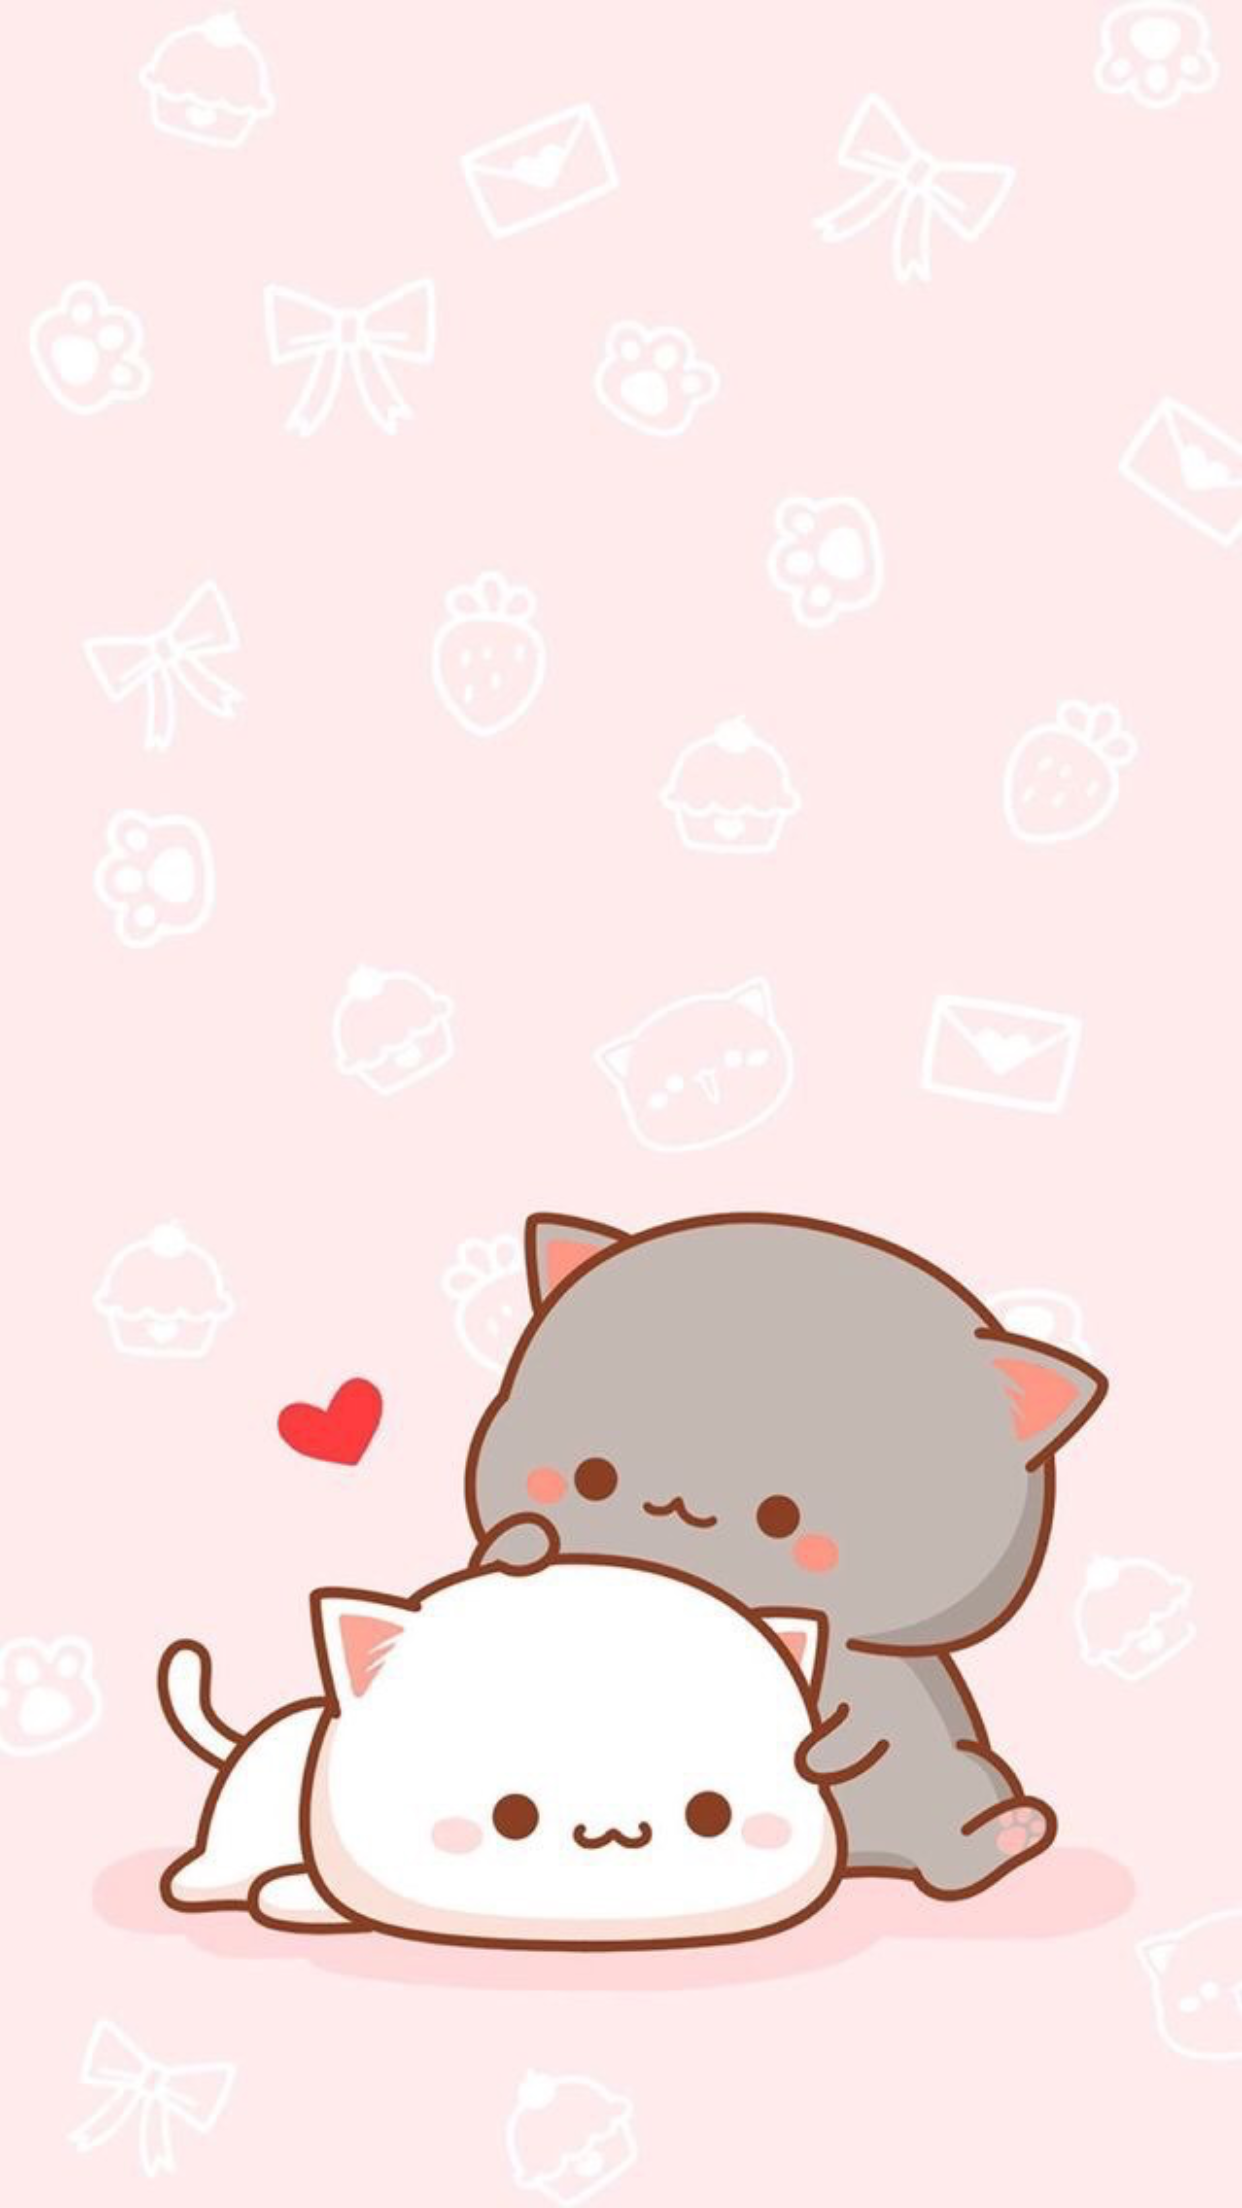 Fsℓℓsw Fsya Msyaye Riiѕ Babyangelpeach Cute Cartoon Wallpapers Cute Cat Wallpaper Cute Wallpapers